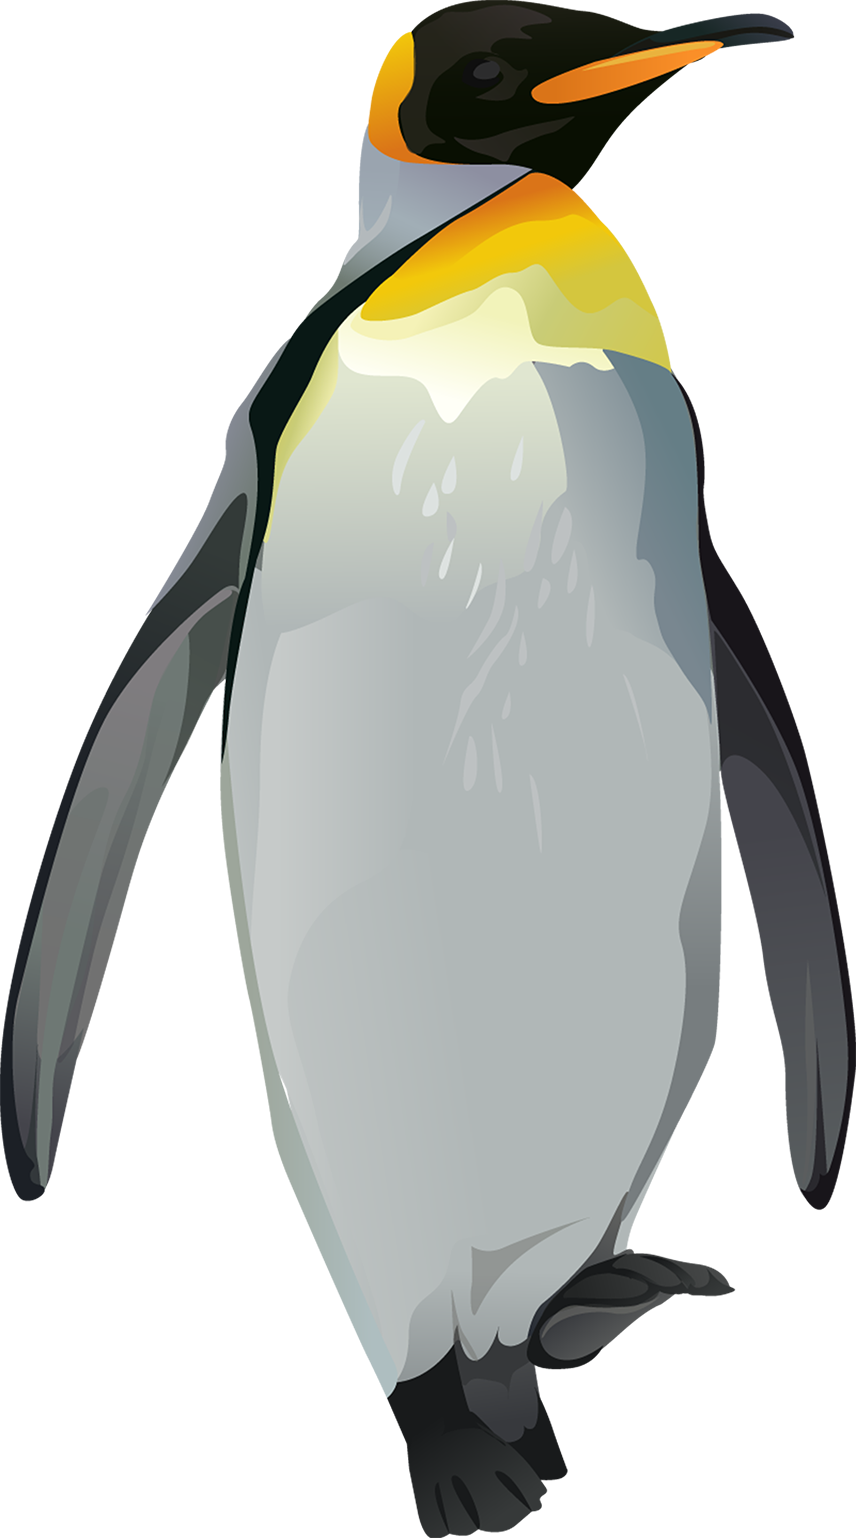 Penguin T-Shirt - Vibrant Vector